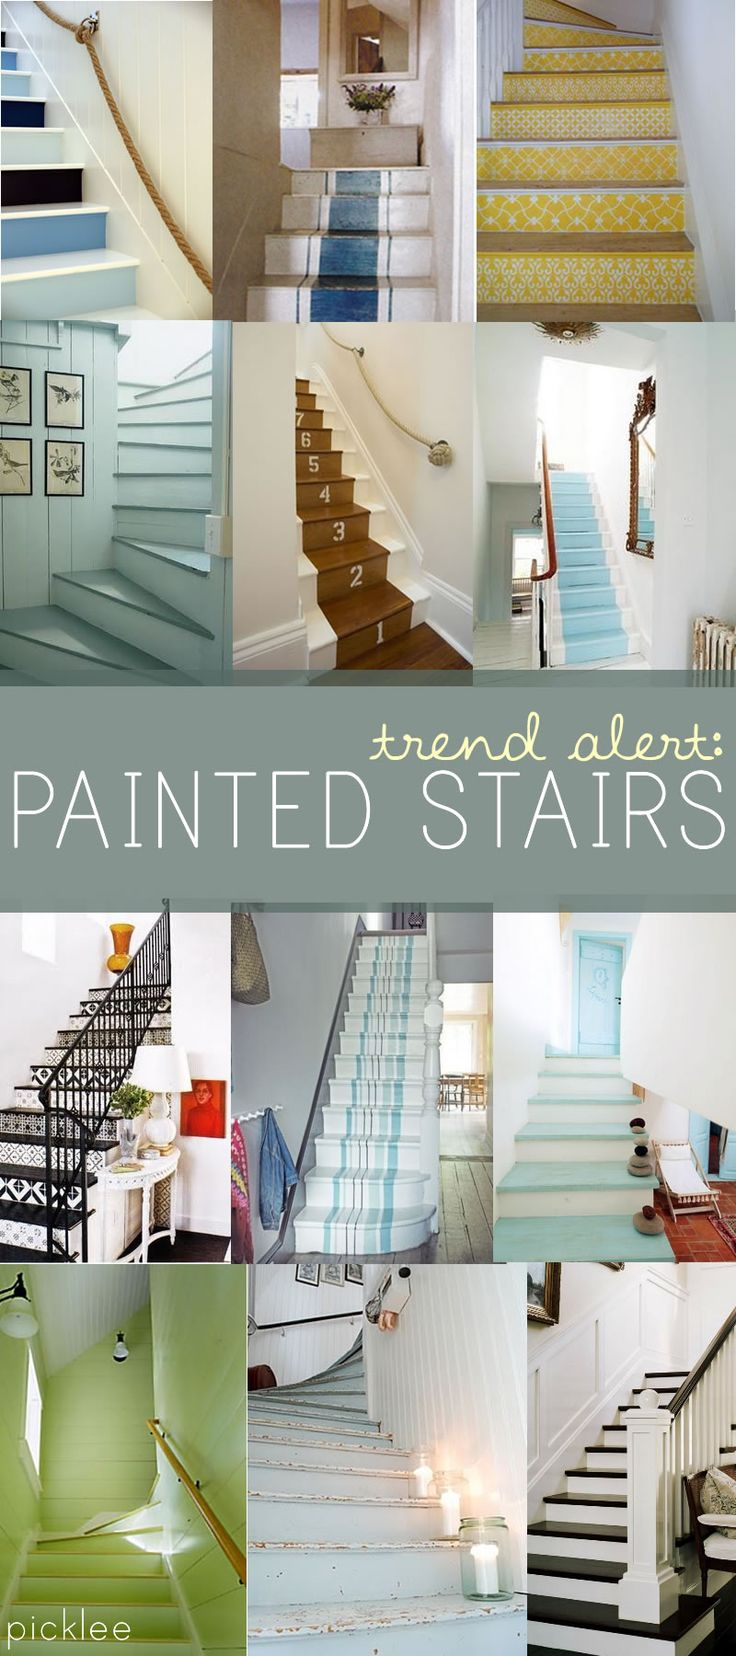 Painted Stairs Best 25 Painting Stairs Ideas Only On Pinterest Paint Stairs